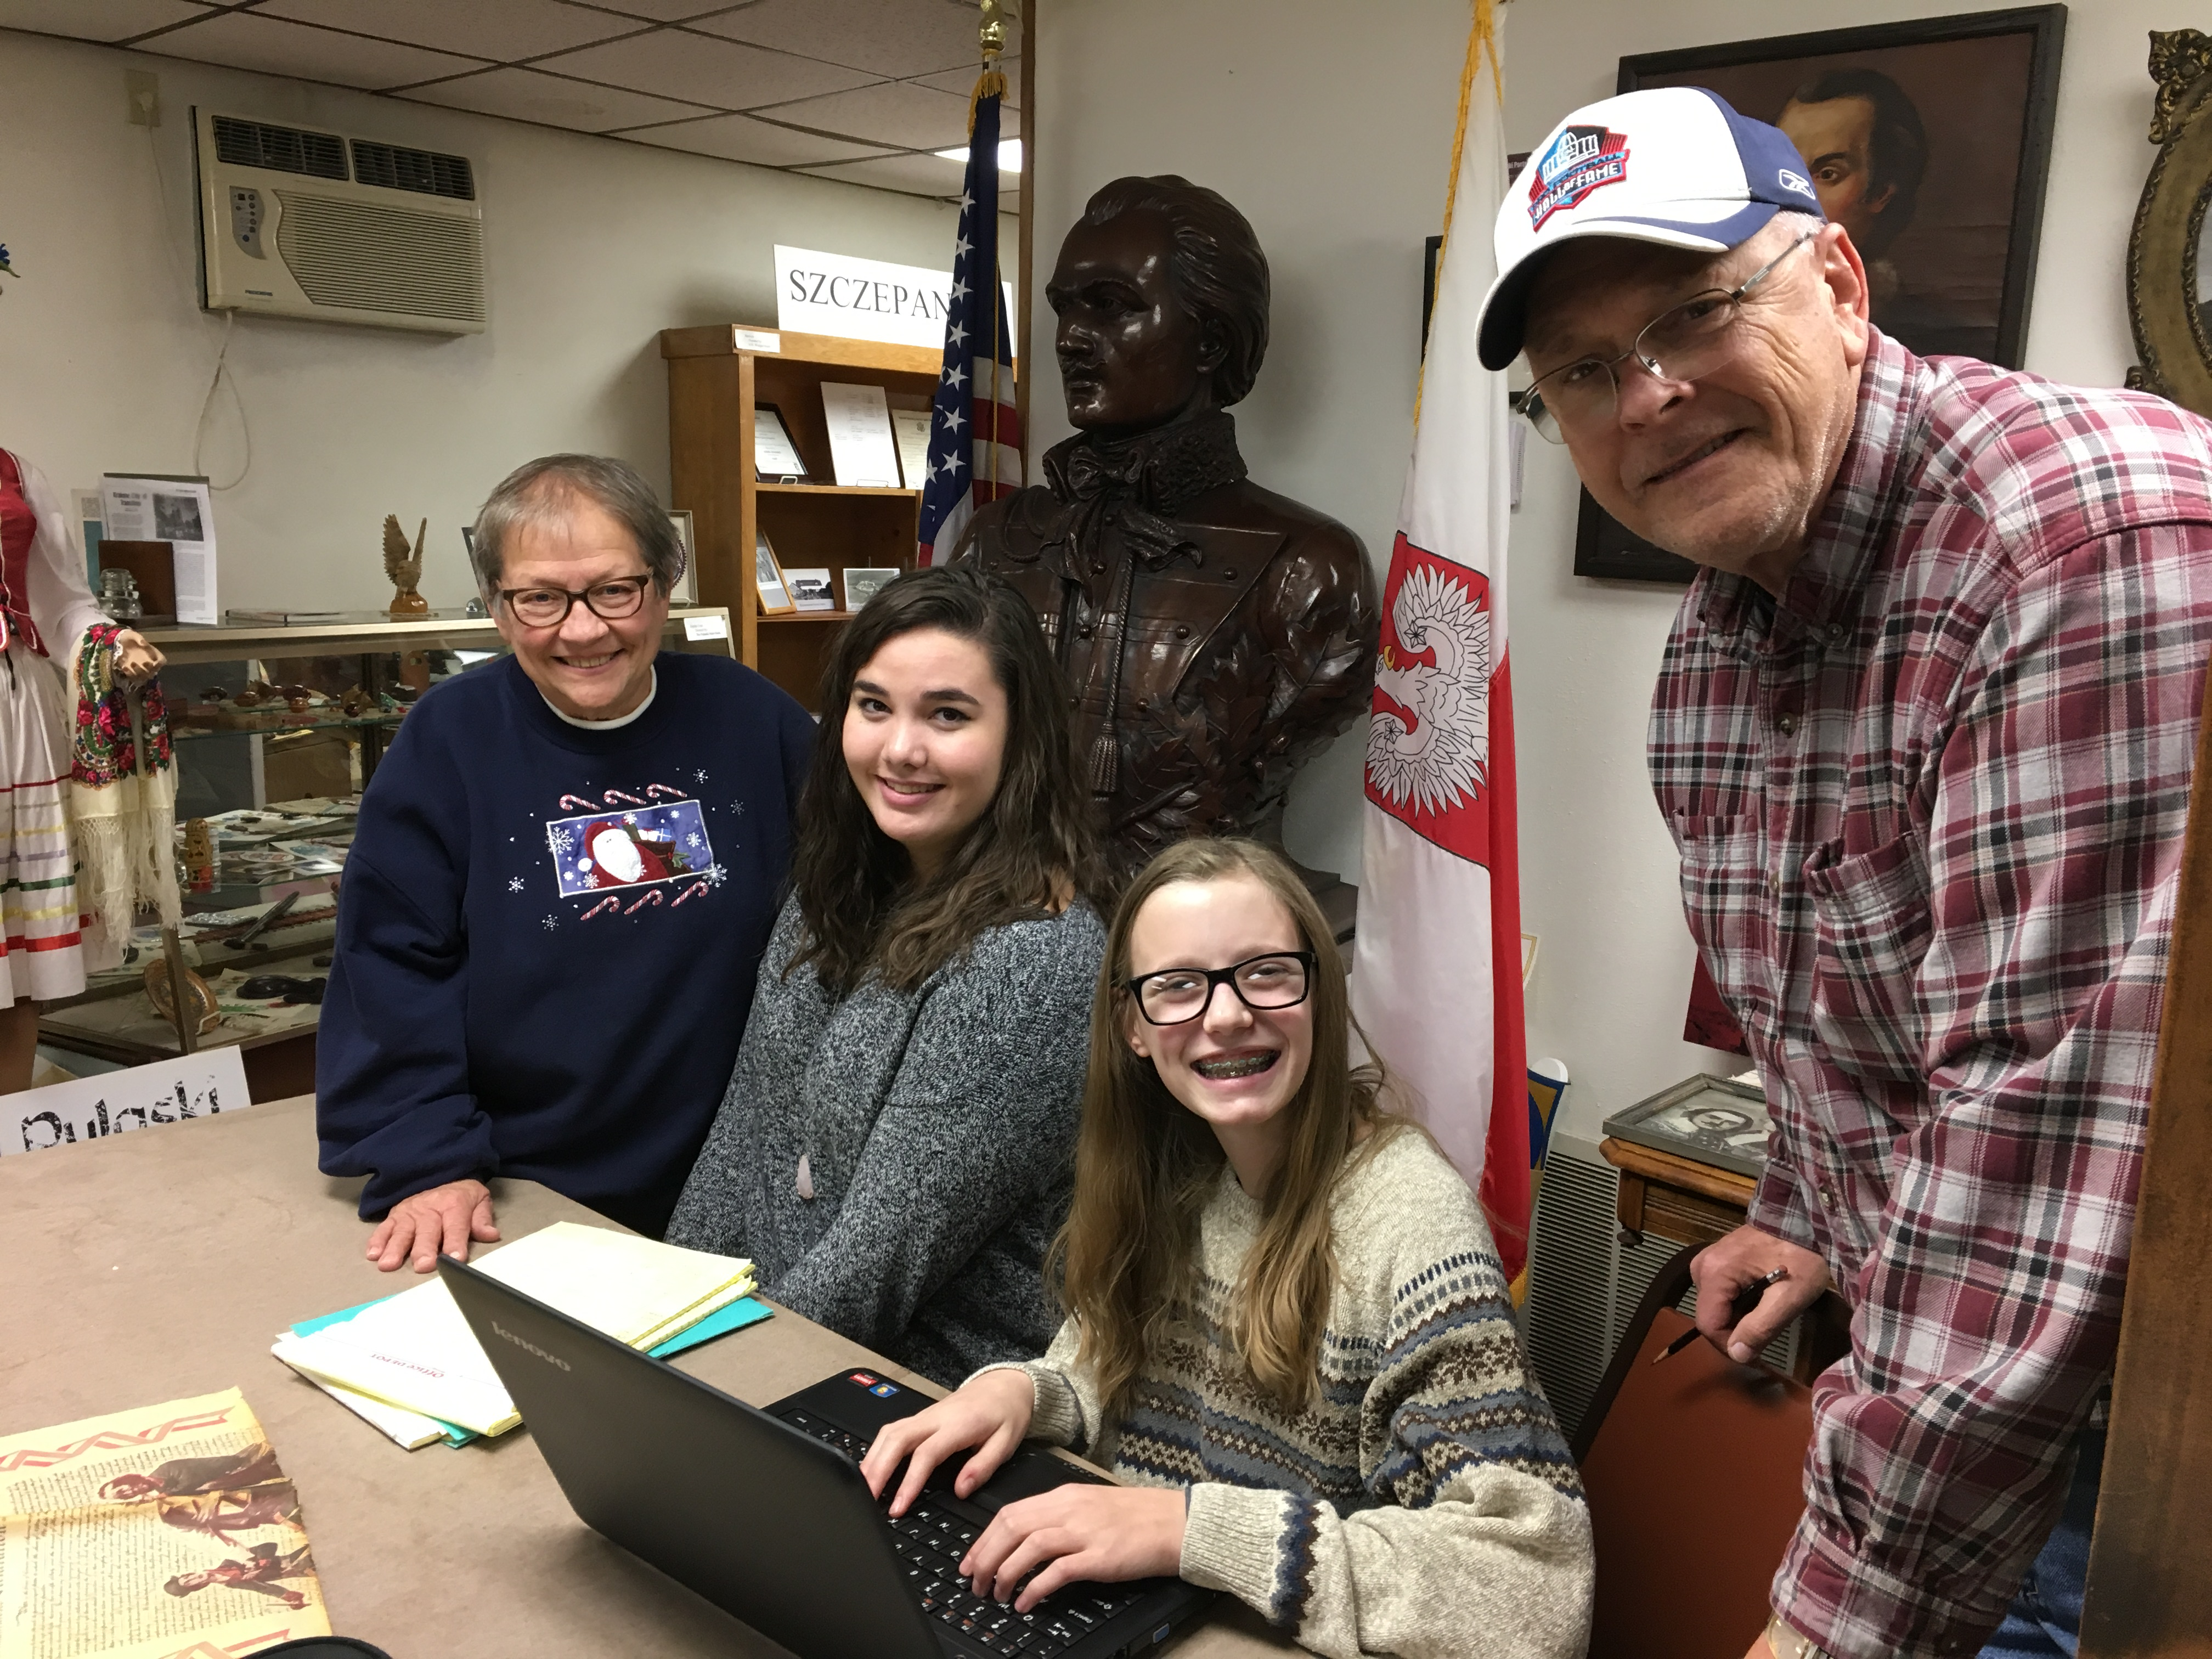 Volunteer with the Pulaski Area Historical Society